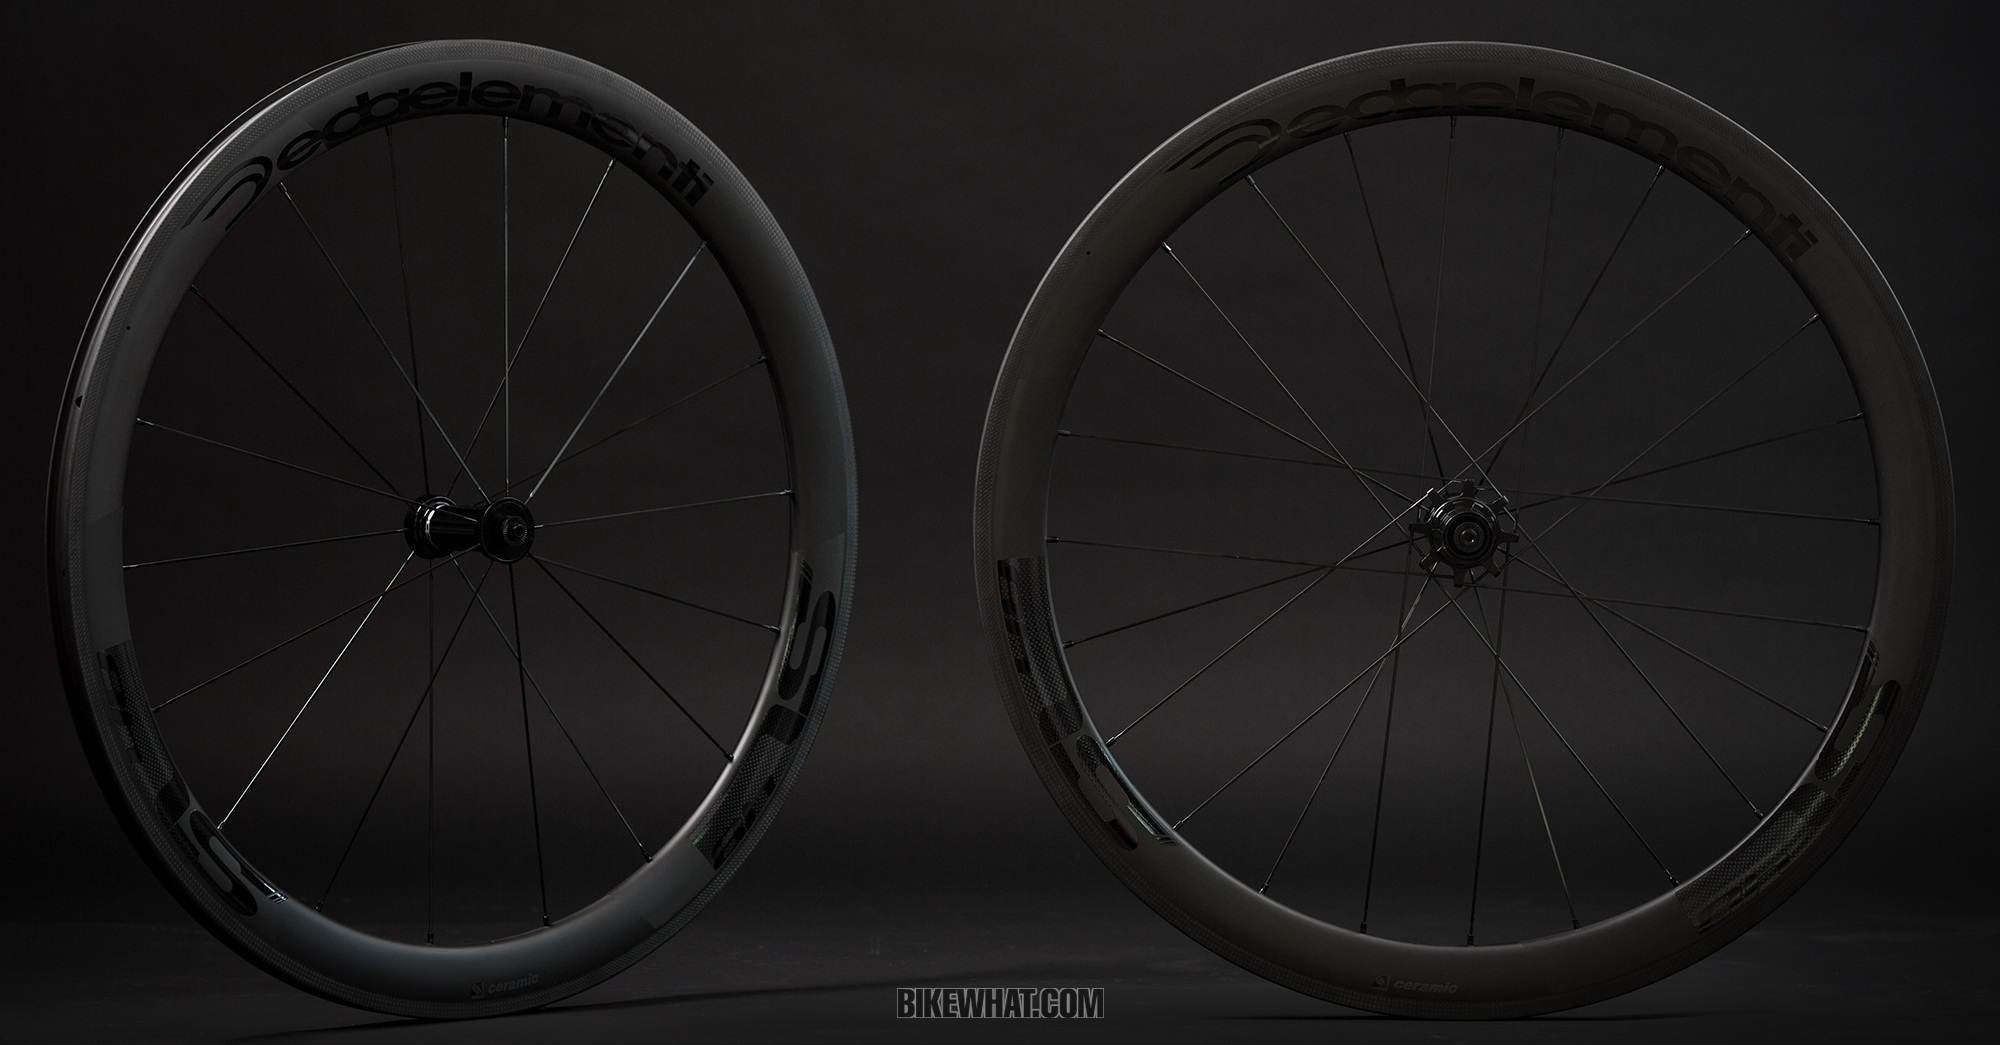 Preview_Dedaelementi_Wheel_SL48C_1.jpg